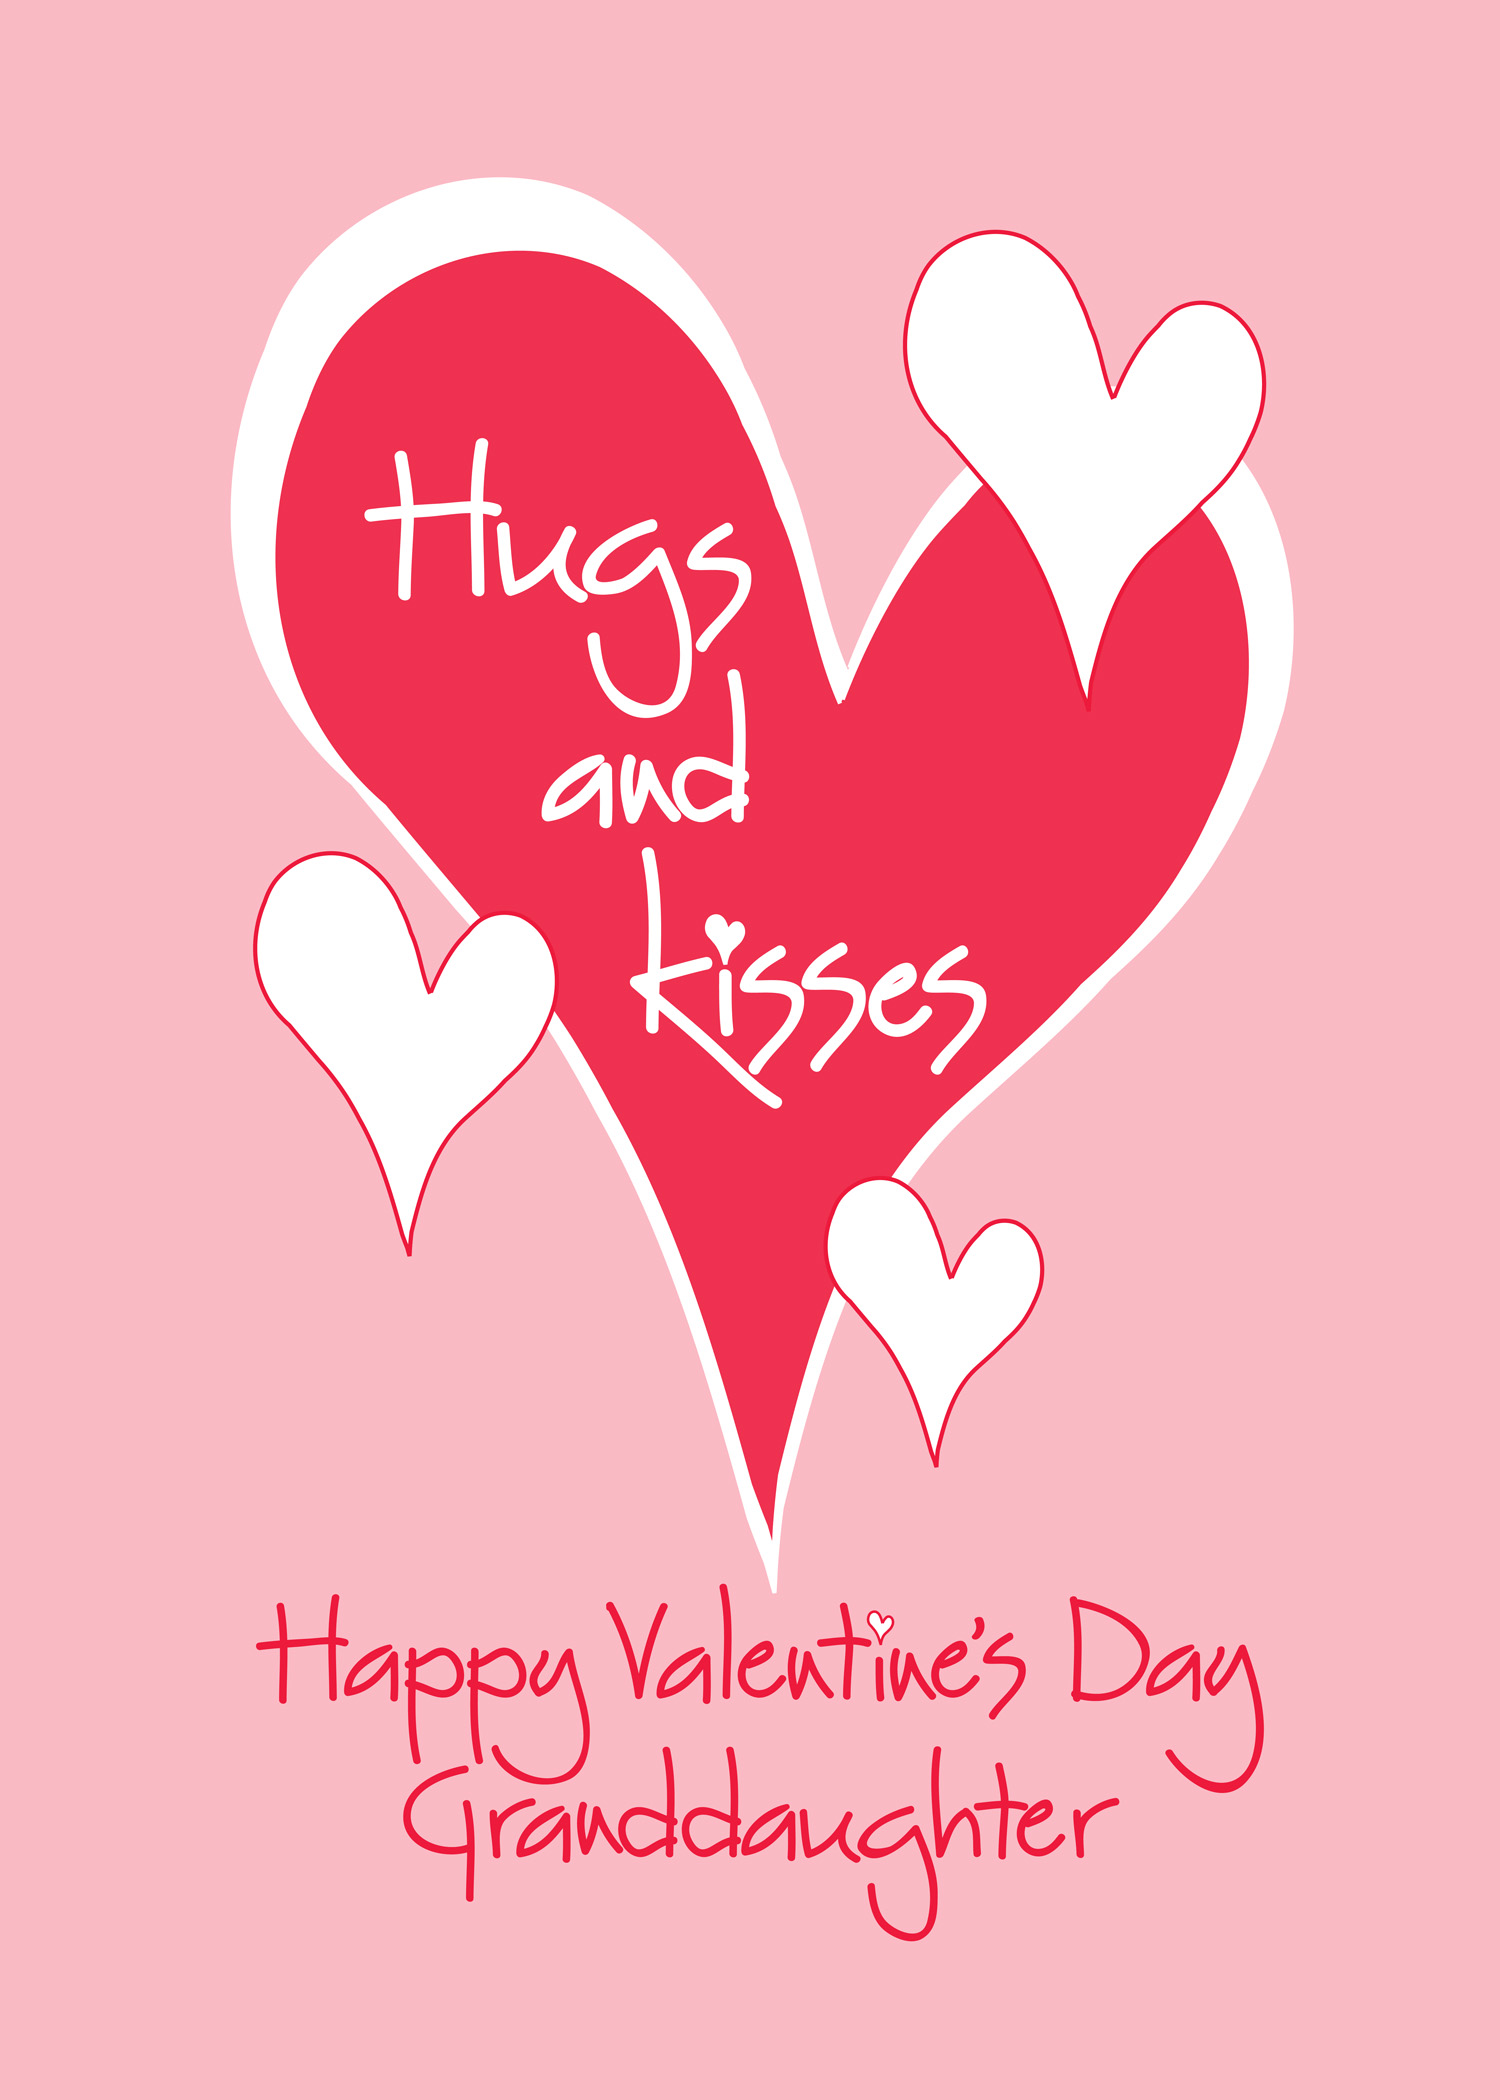 Valentines Day will soon be here – Granddaughter Valentine Card